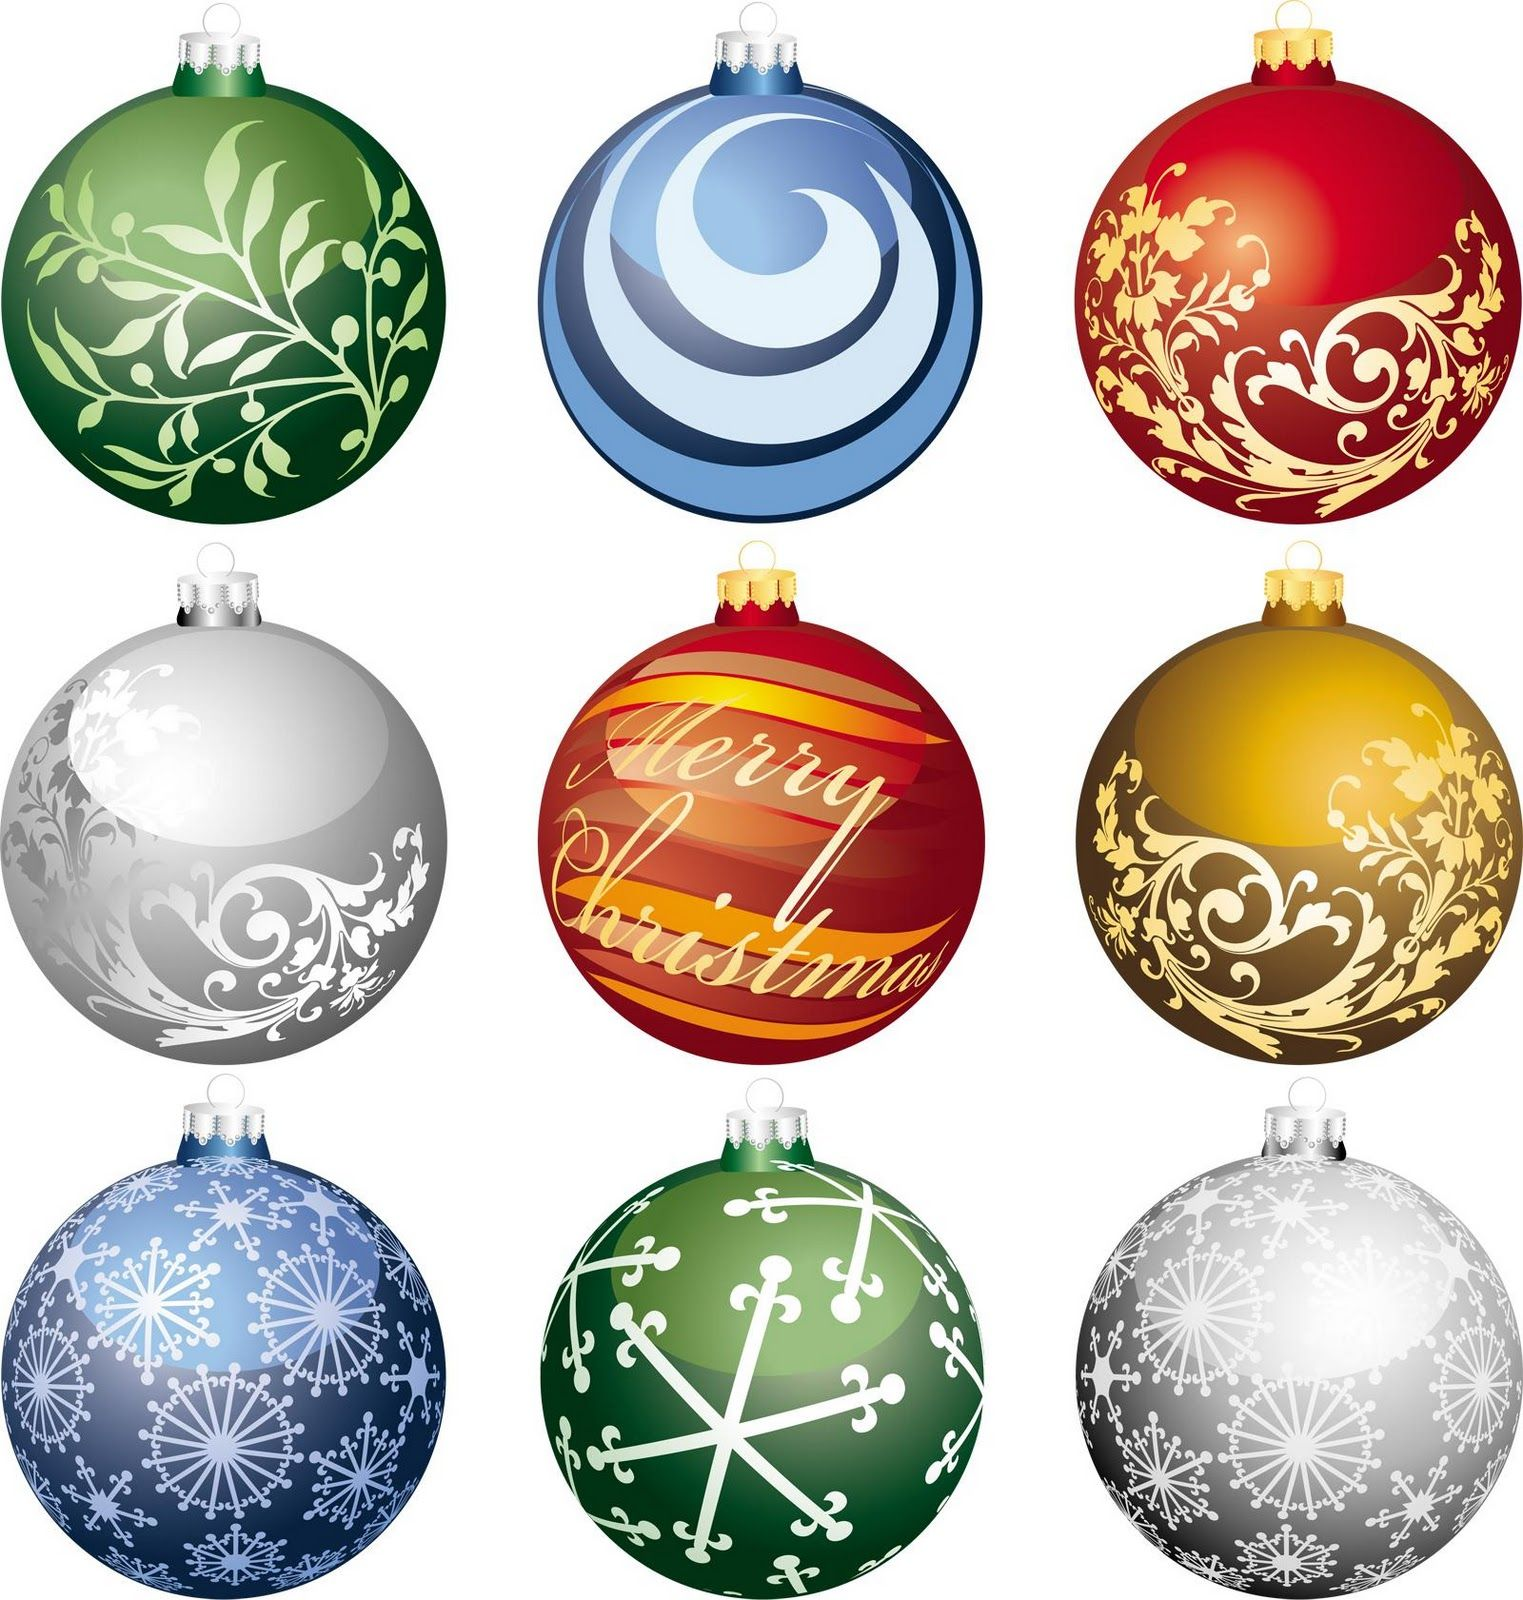 CHRISTMAS ORNAMENTS CLIP ART Christmas card crafts